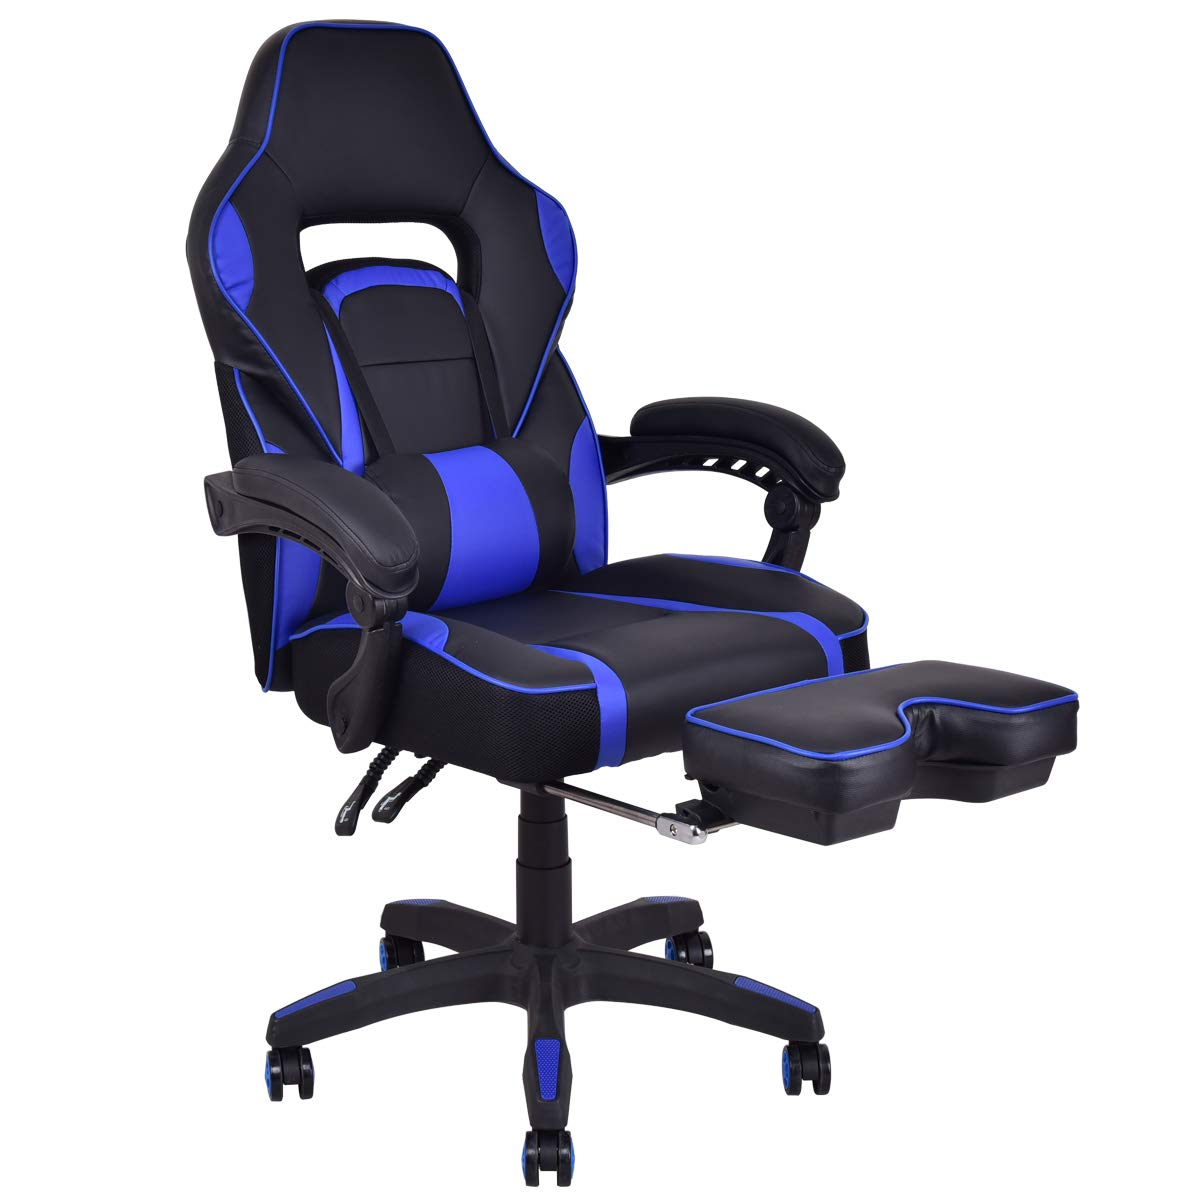 Giantex Ergonomic Gaming Chair, High-Back Racing Chair PU Leather with Retractable Footrest and Lumbar Support Adjusting Swivel Office Chair for Women & Men (Blue) by Giantex